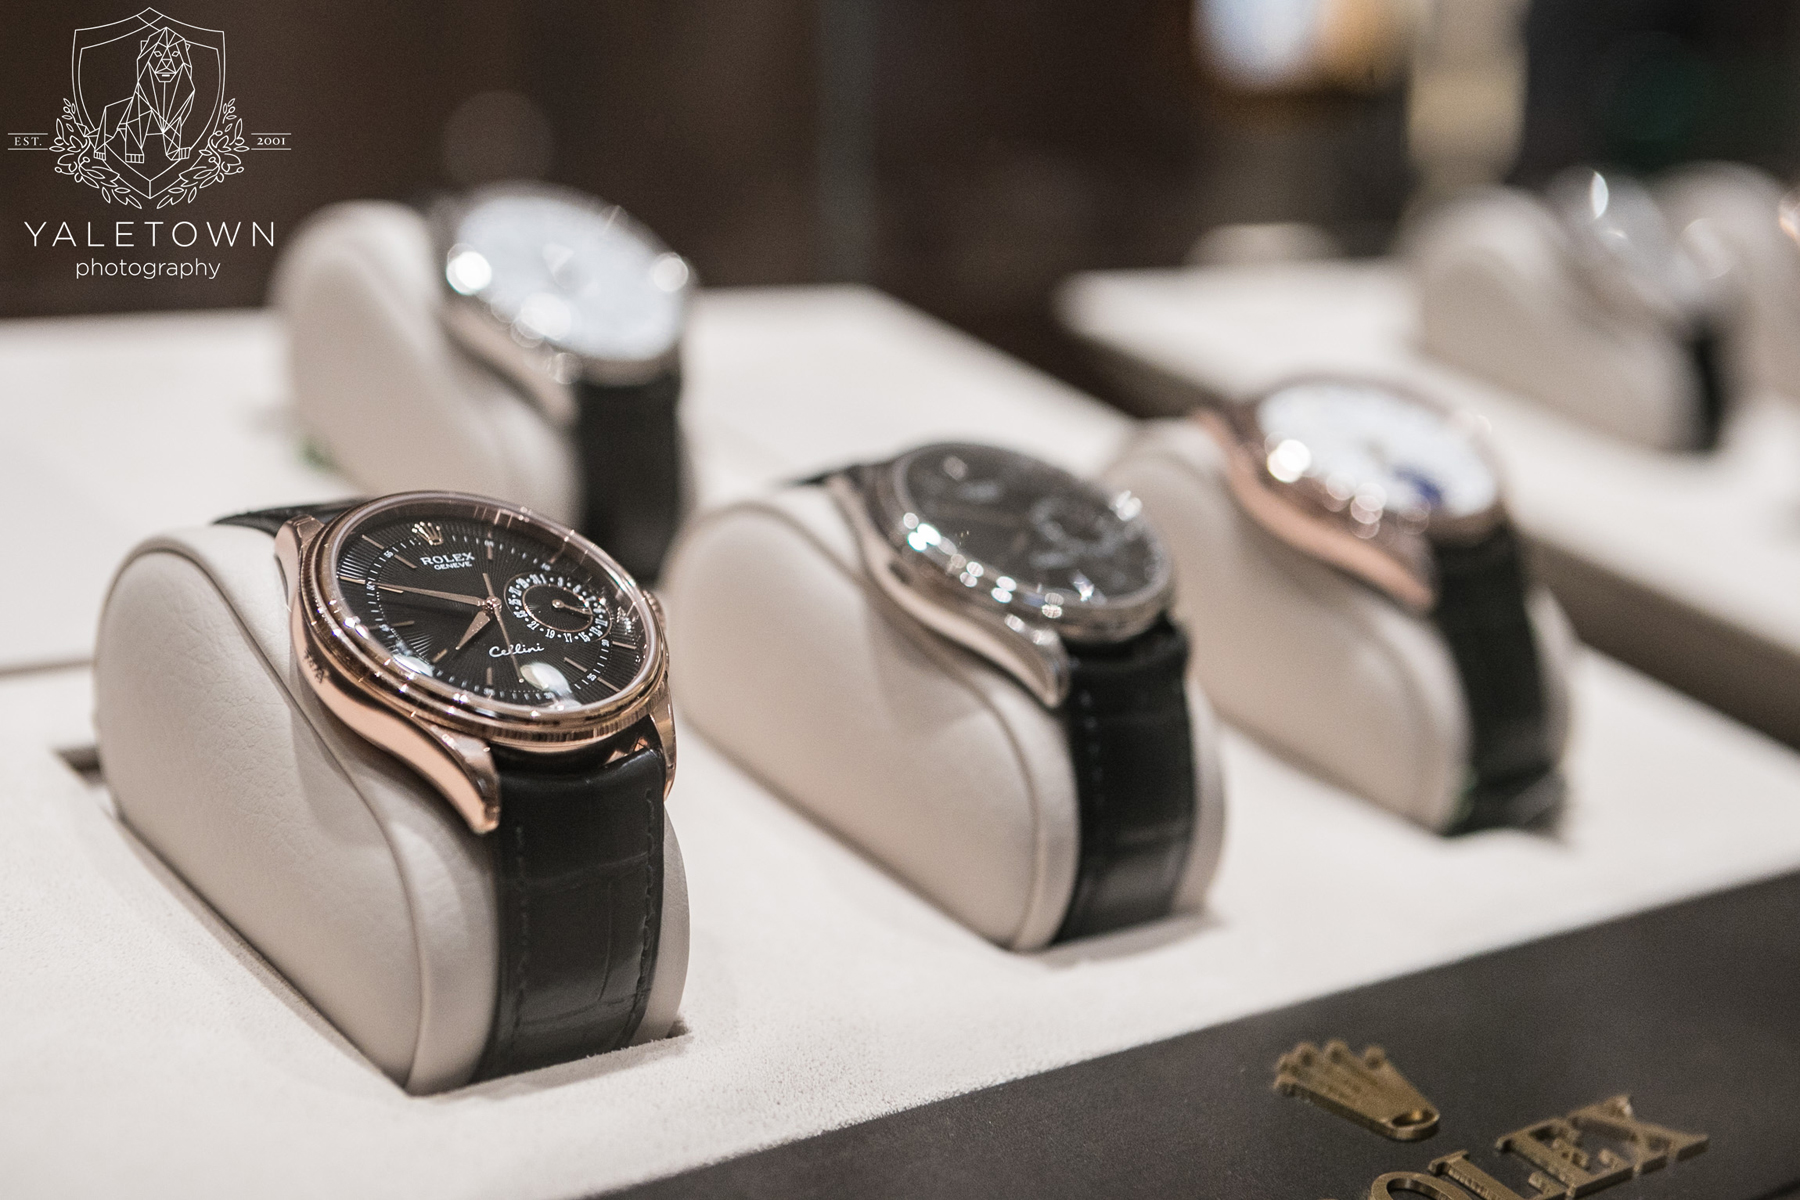 Rolex-Basel-Event-Luxury-Watches-Cellini-Vancouver-Yaletown-Photography-photo